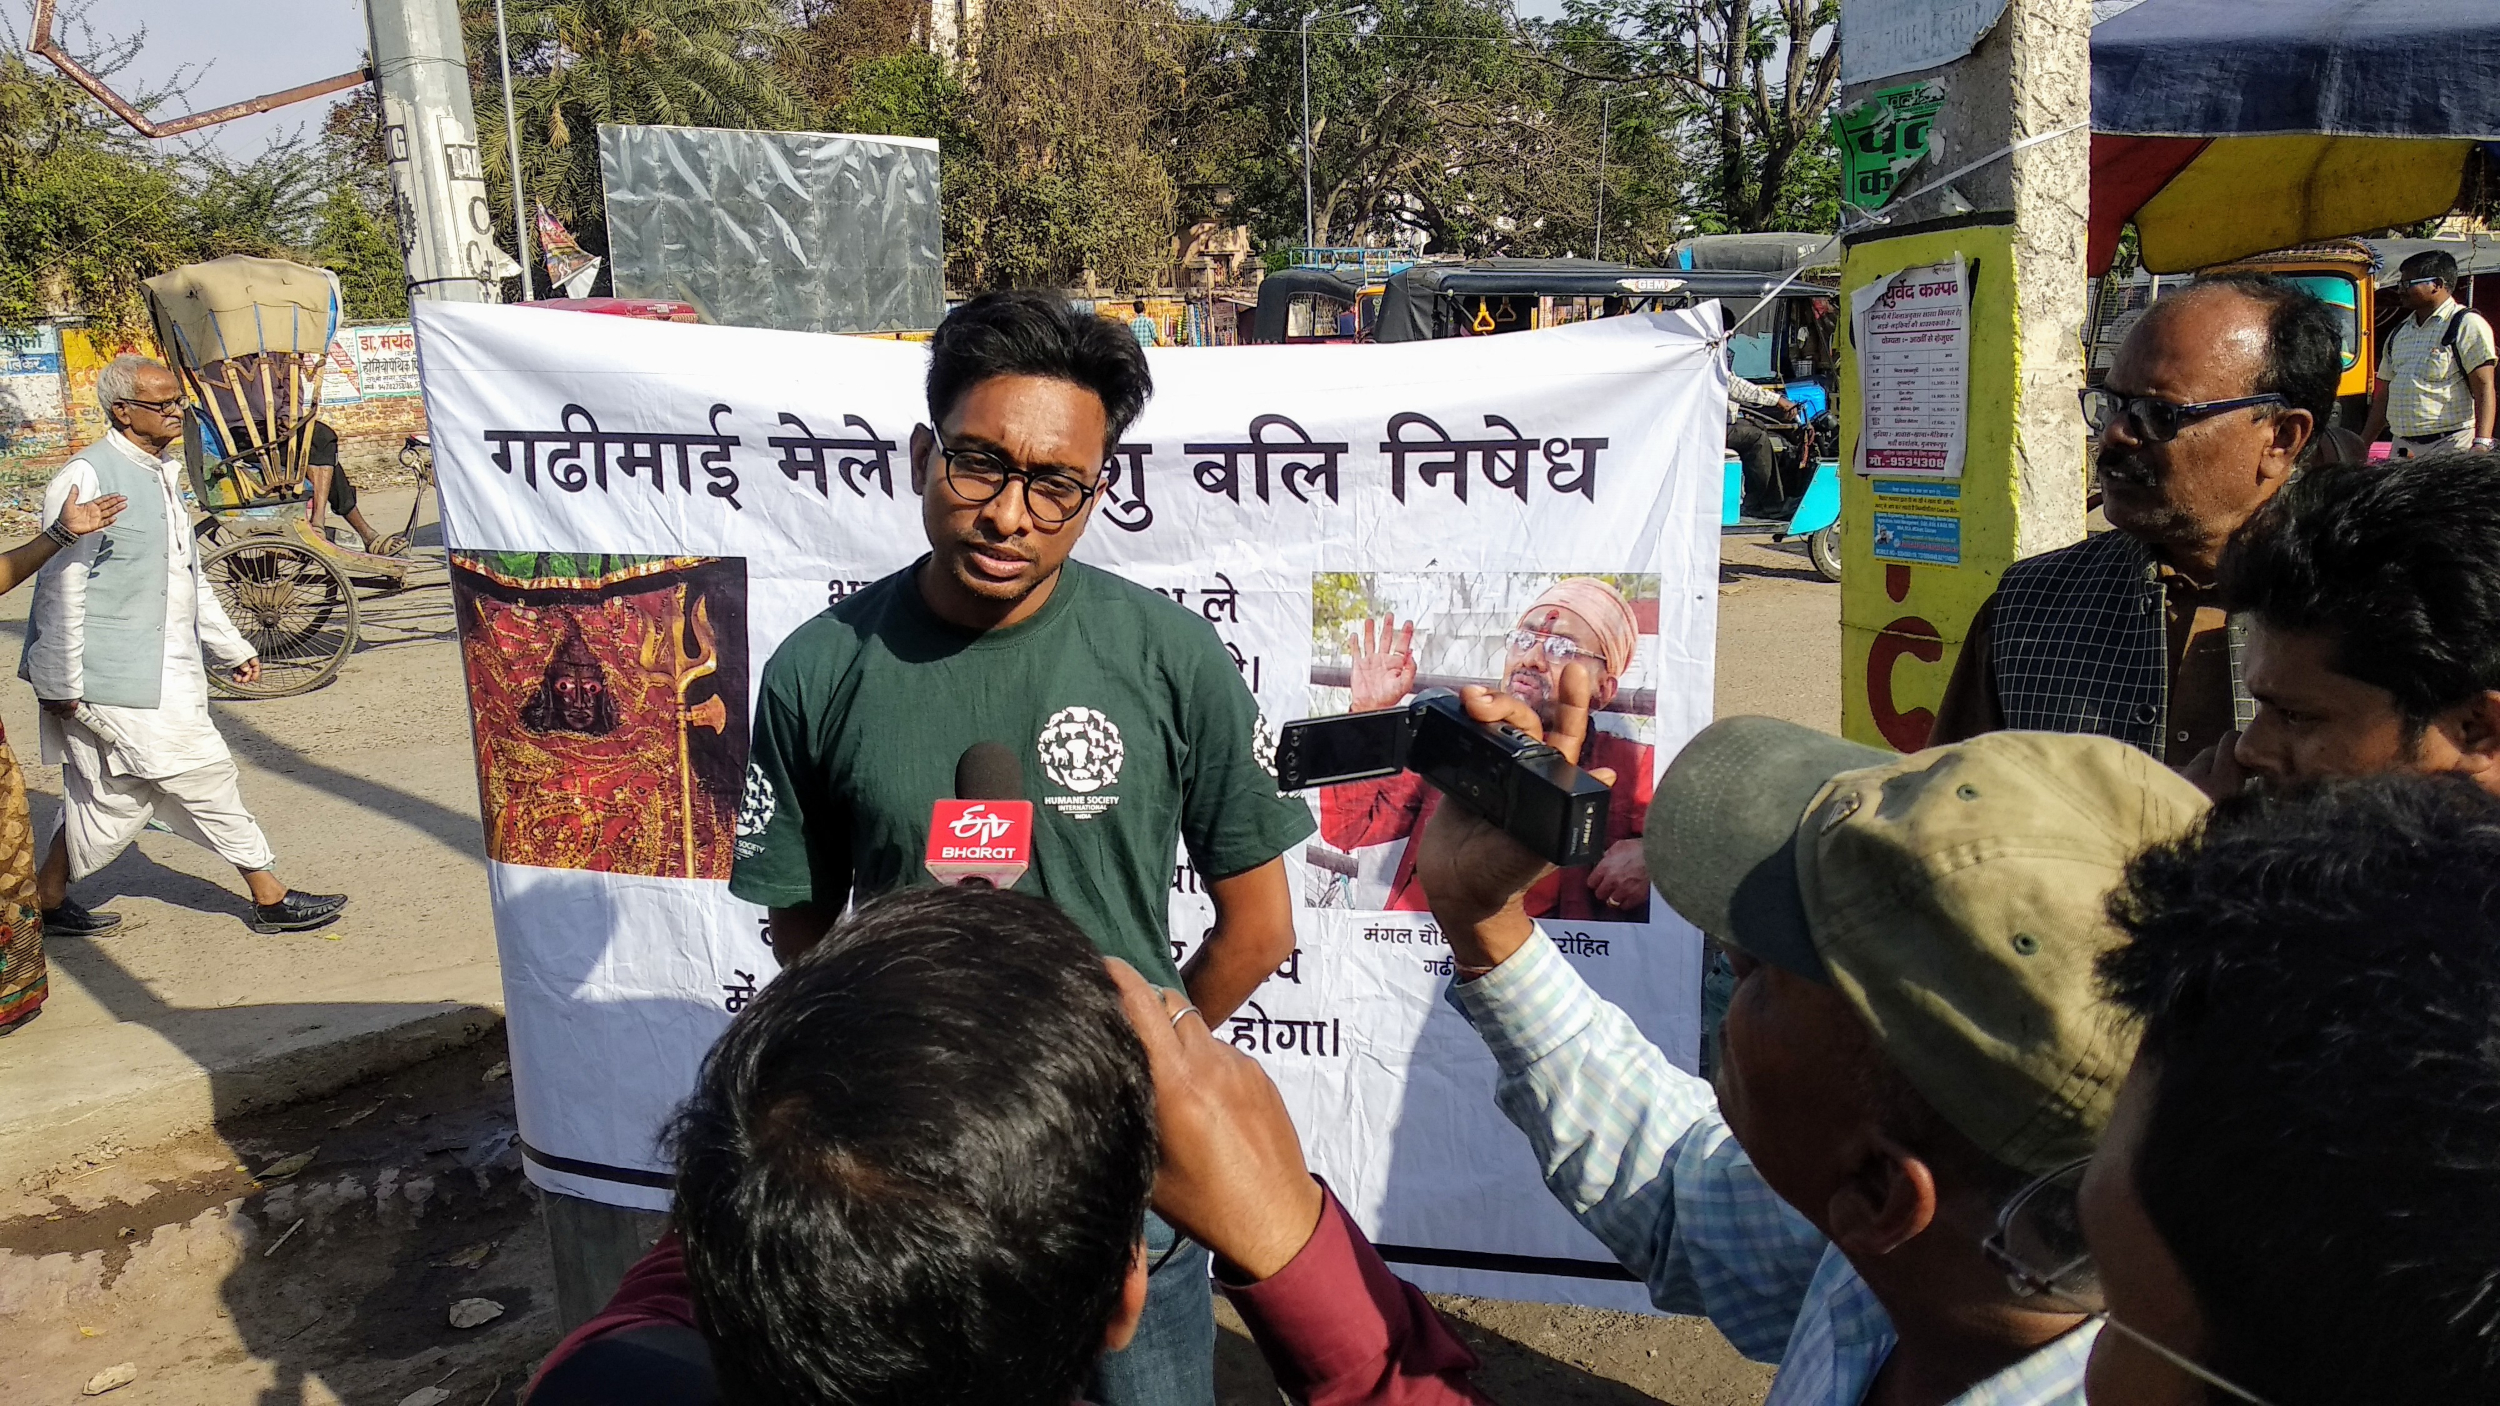 Campaigning against Gadhimai sacrifice